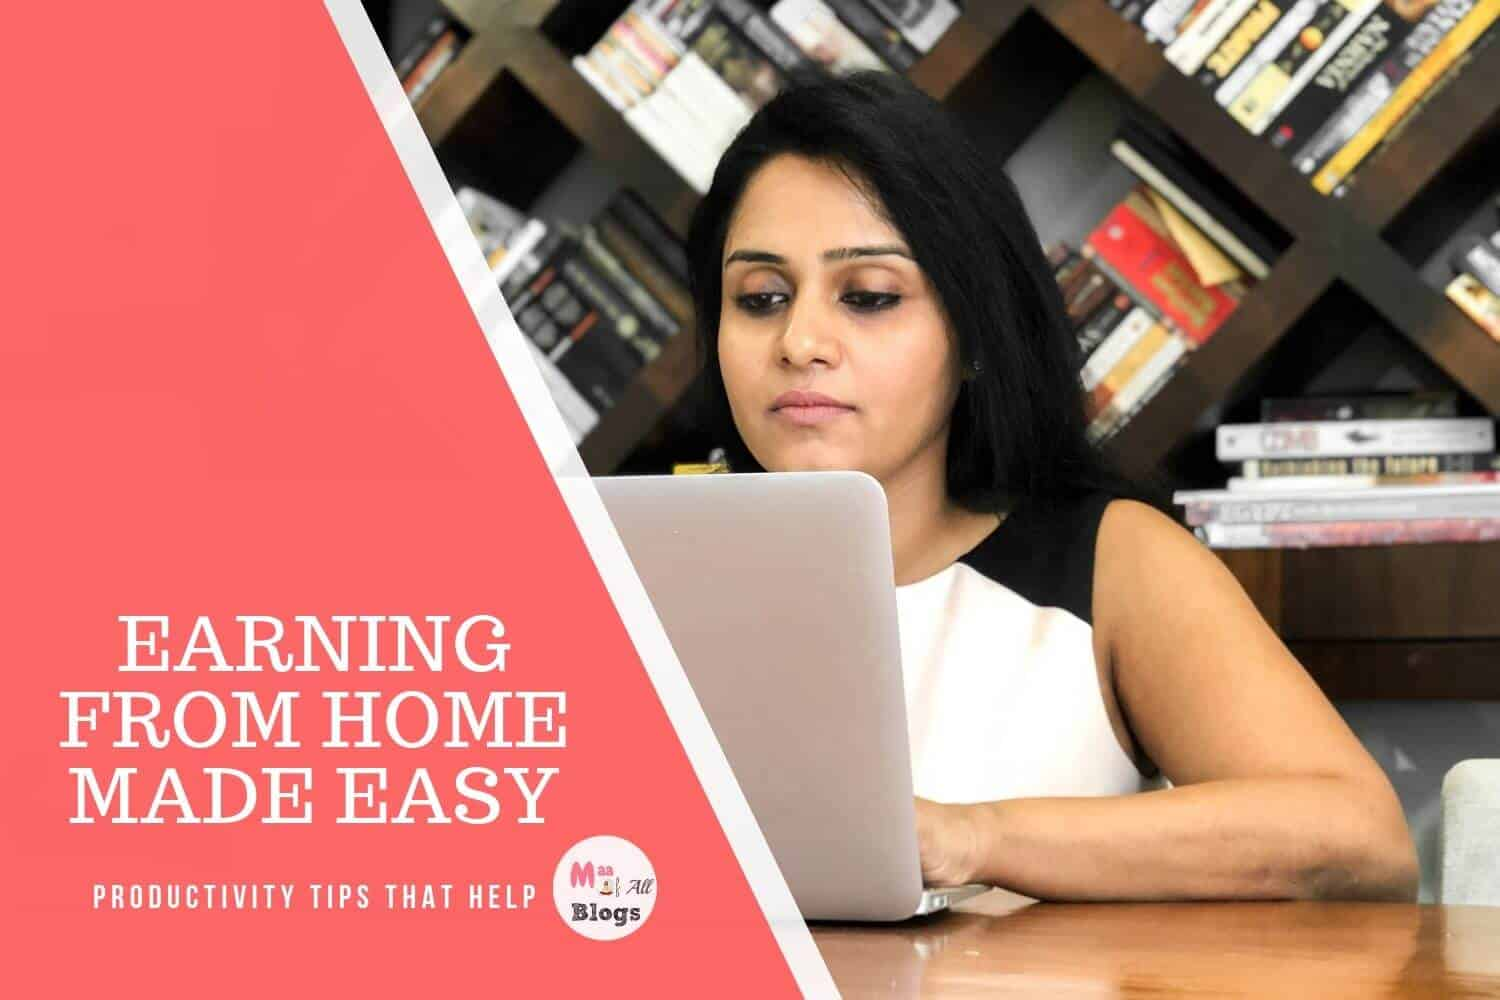 Earning From Home Made Easy. Productivity That Help.